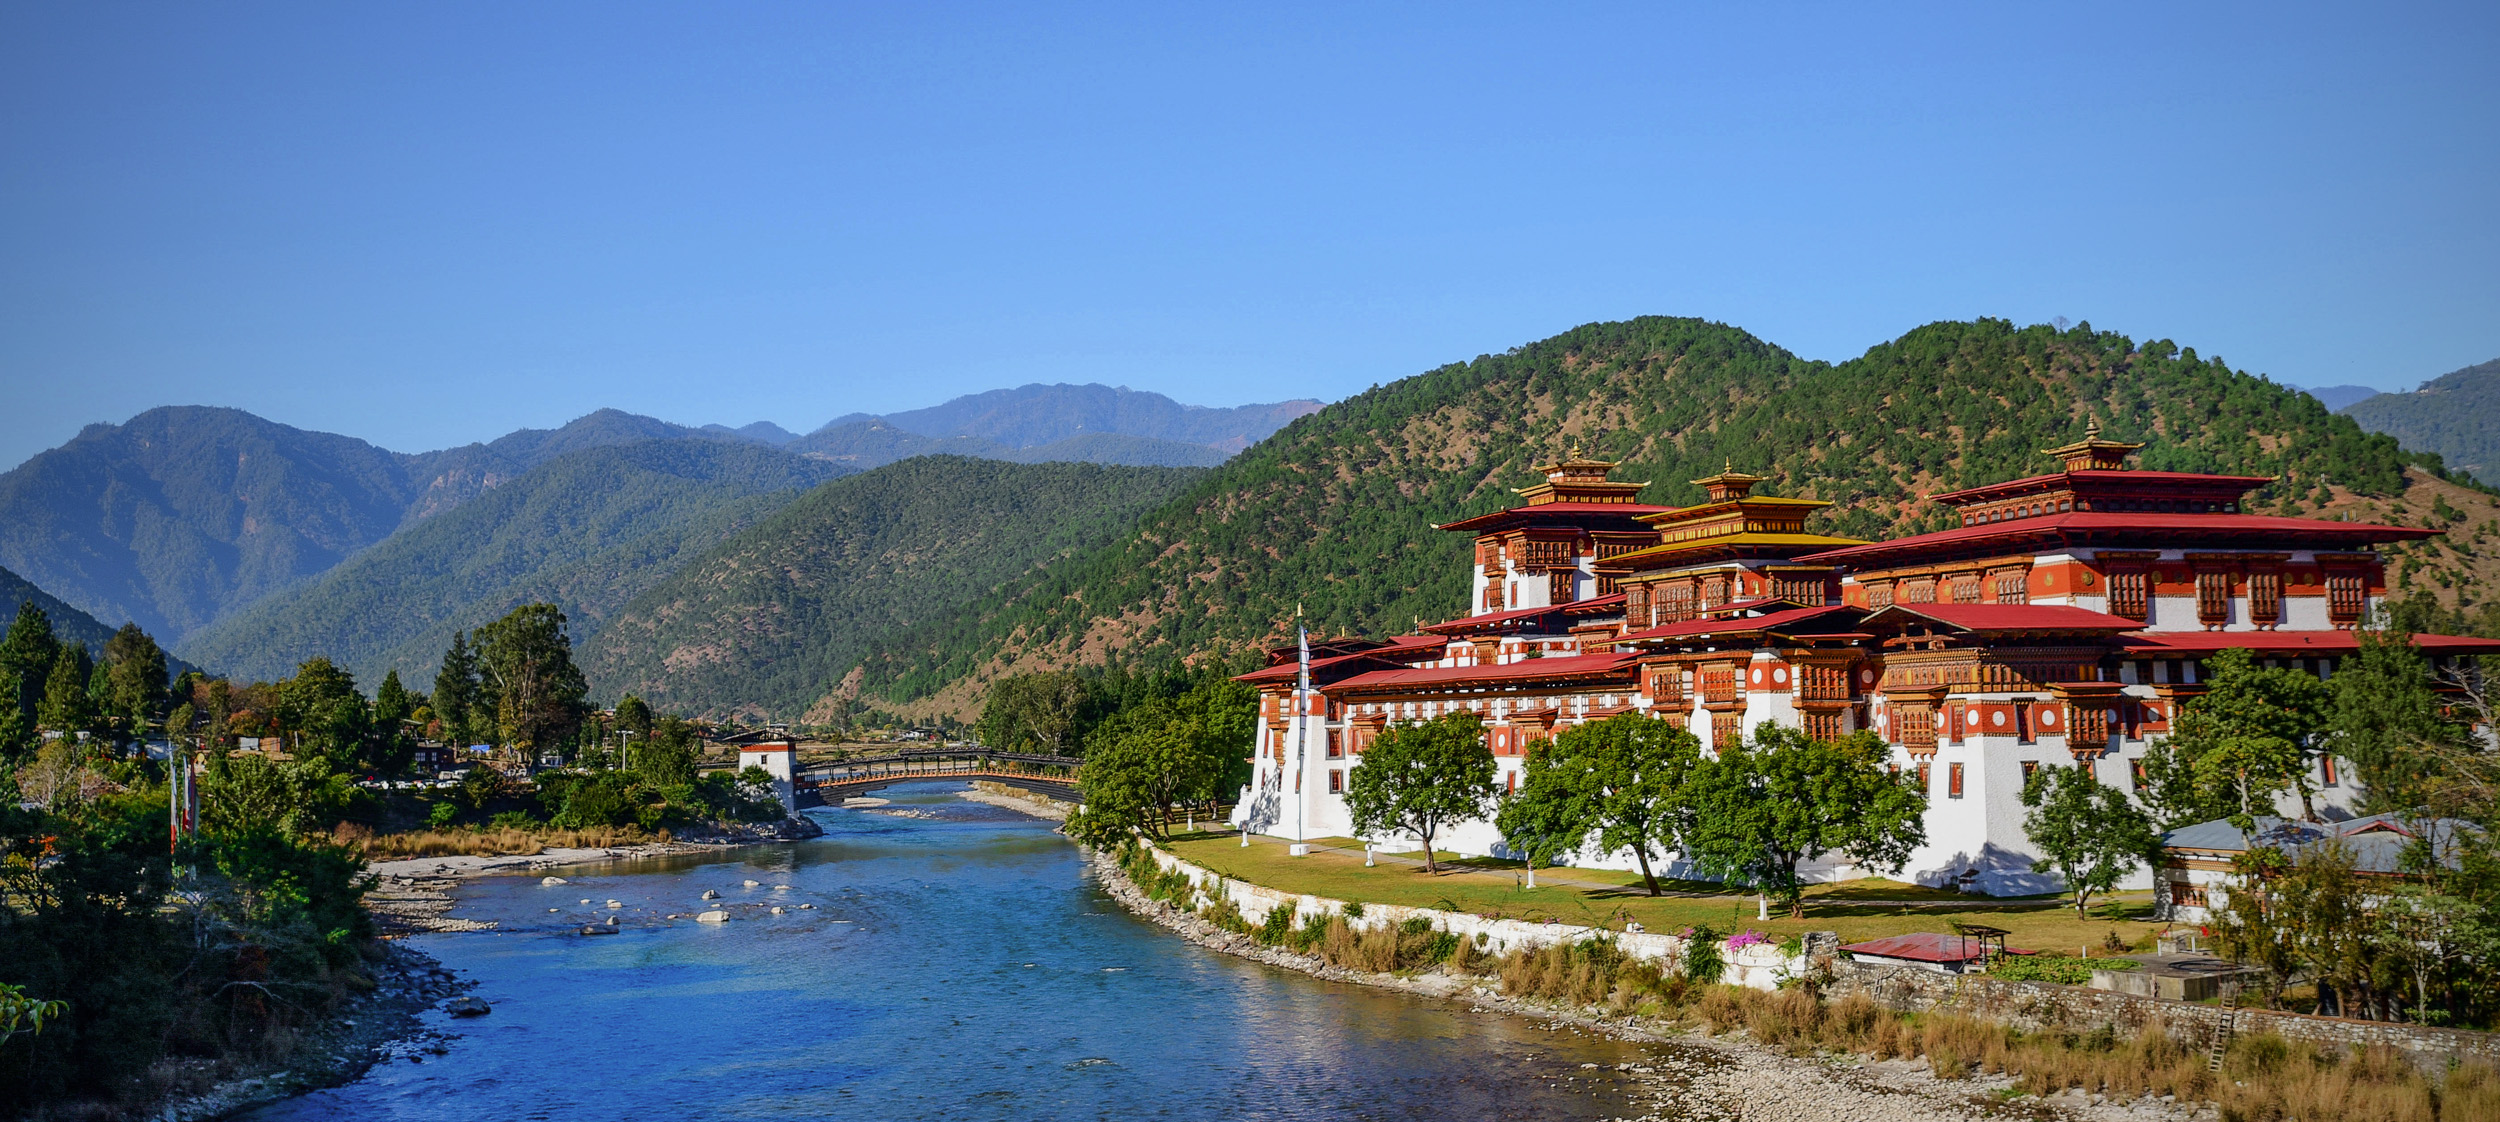 Ancient white and red fortress on the right side of a riverbank, with mountain in the background.